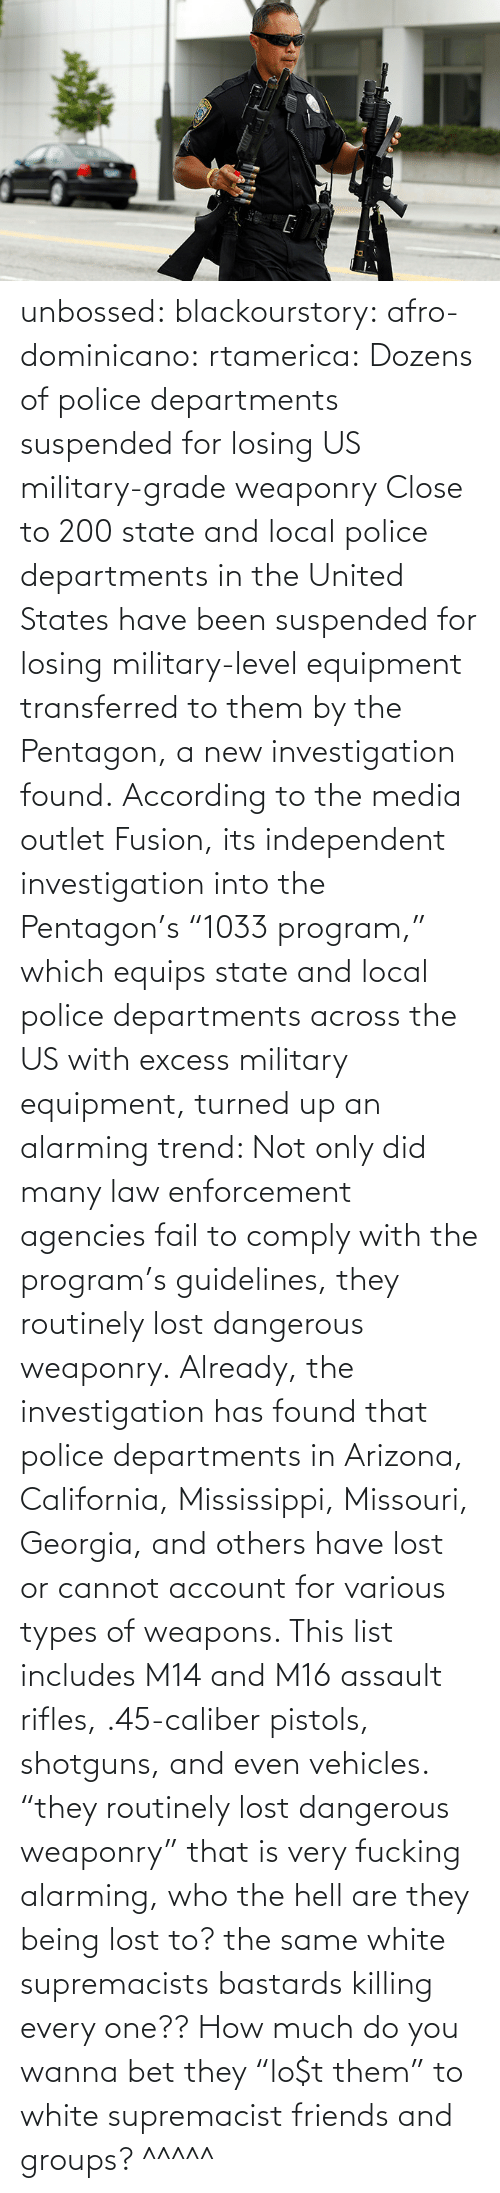 "states: unbossed: blackourstory:  afro-dominicano:  rtamerica:  Dozens of police departments suspended for losing US military-grade weaponry Close to 200 state and local police departments in the United States have been suspended for losing military-level equipment transferred to them by the Pentagon, a new investigation found. According to the media outlet Fusion, its independent investigation into the Pentagon's ""1033 program,"" which equips state and local police departments across the US with excess military equipment, turned up an alarming trend: Not only did many law enforcement agencies fail to comply with the program's guidelines, they routinely lost dangerous weaponry. Already, the investigation has found that police departments in Arizona, California, Mississippi, Missouri, Georgia, and others have lost or cannot account for various types of weapons. This list includes M14 and M16 assault rifles, .45-caliber pistols, shotguns, and even vehicles.  ""they routinely lost dangerous weaponry"" that is very fucking alarming, who the hell are they being lost to? the same white supremacists bastards killing every one??  How much do you wanna bet they ""lo$t them"" to white supremacist friends and groups?   ^^^^^"